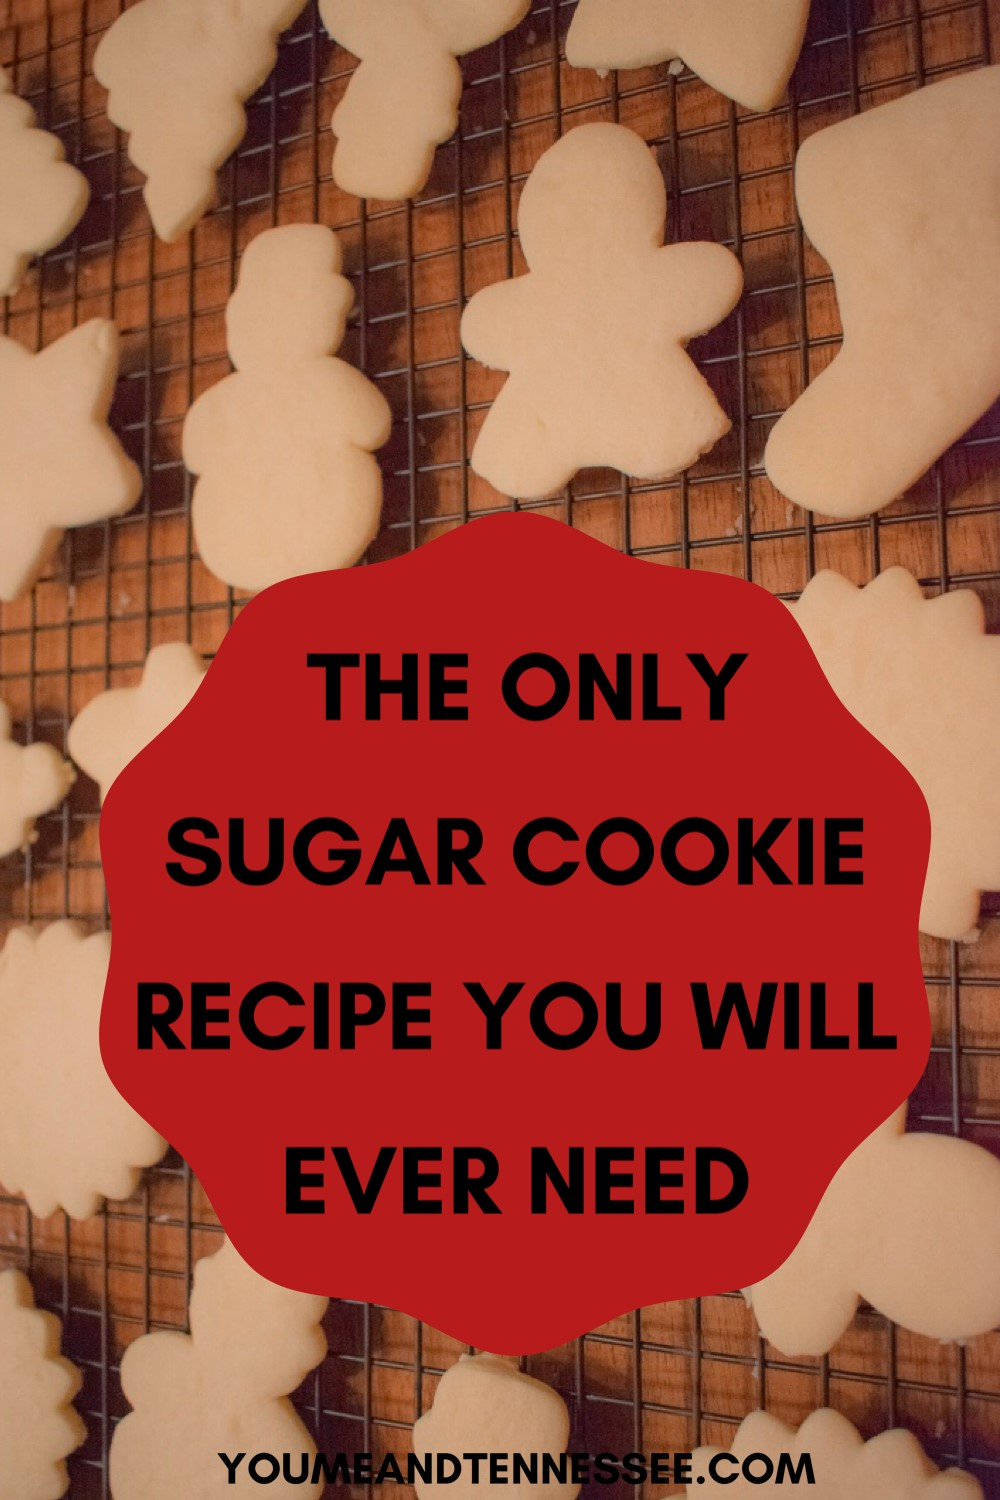 THE ONLY SUGAR COOKIE RECIPE YOU WILL EVER NEED